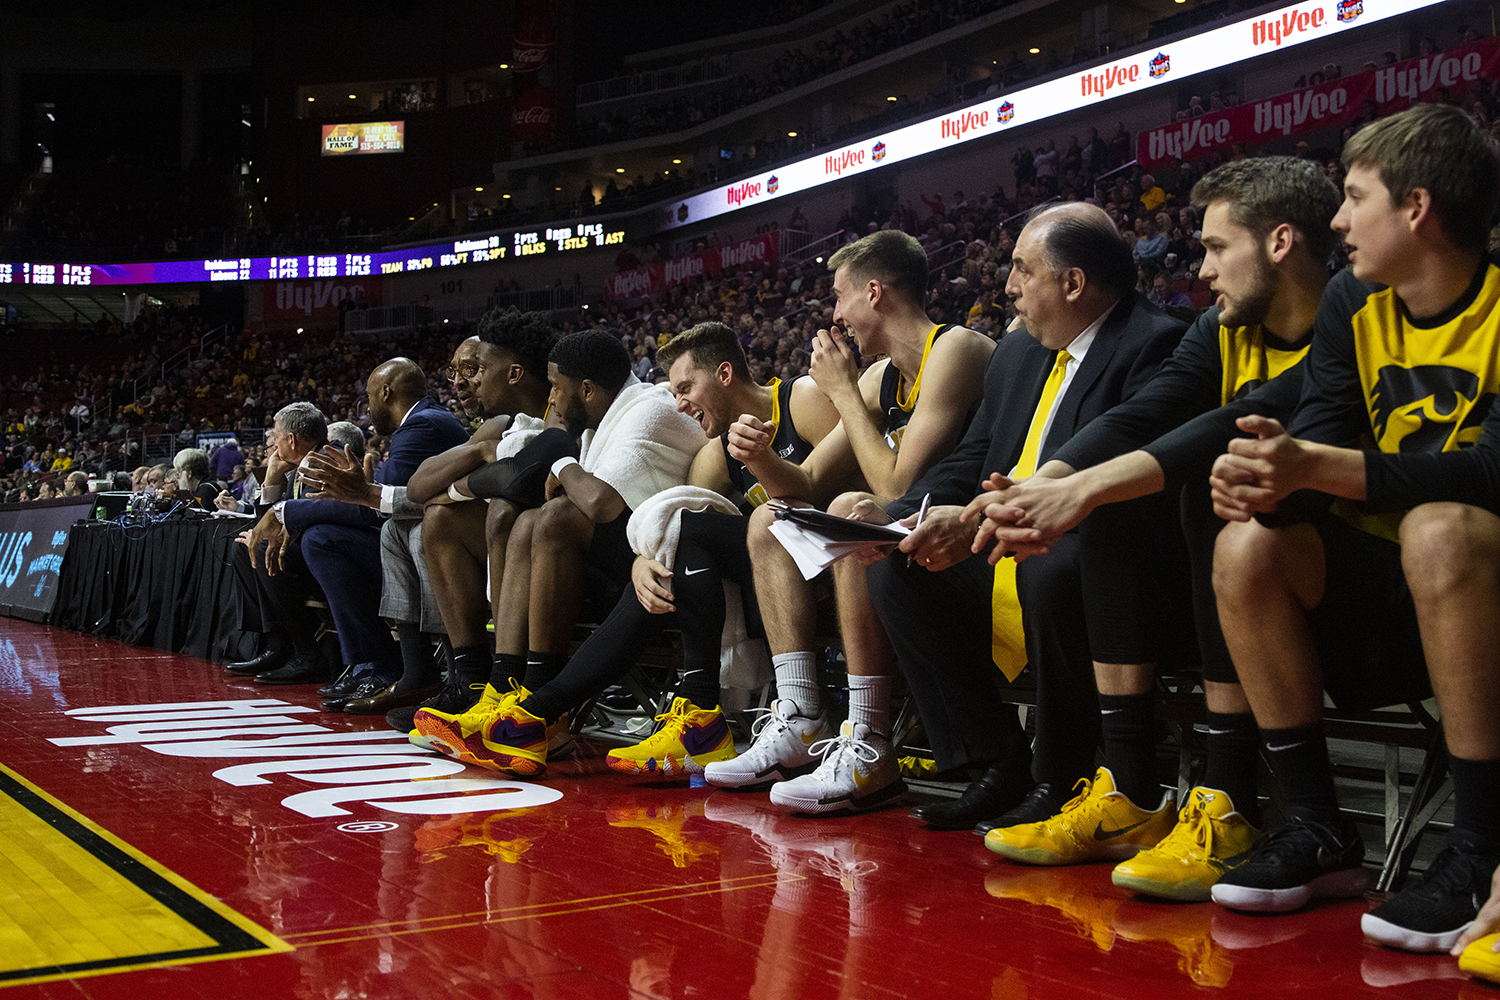 Iowa%27s+Jordan+Bohannon+laughs+at+Joe+Wieskamp%27s+joke+during+the+Iowa%2FUNI+men%27s+basketball+game+at+Wells+Fargo+Arena+in+Des+Moines+on+Saturday%2C+Dec.+15%2C+2018.+The+Hawkeyes+defeated+the+Panthers%2C+77-54.+